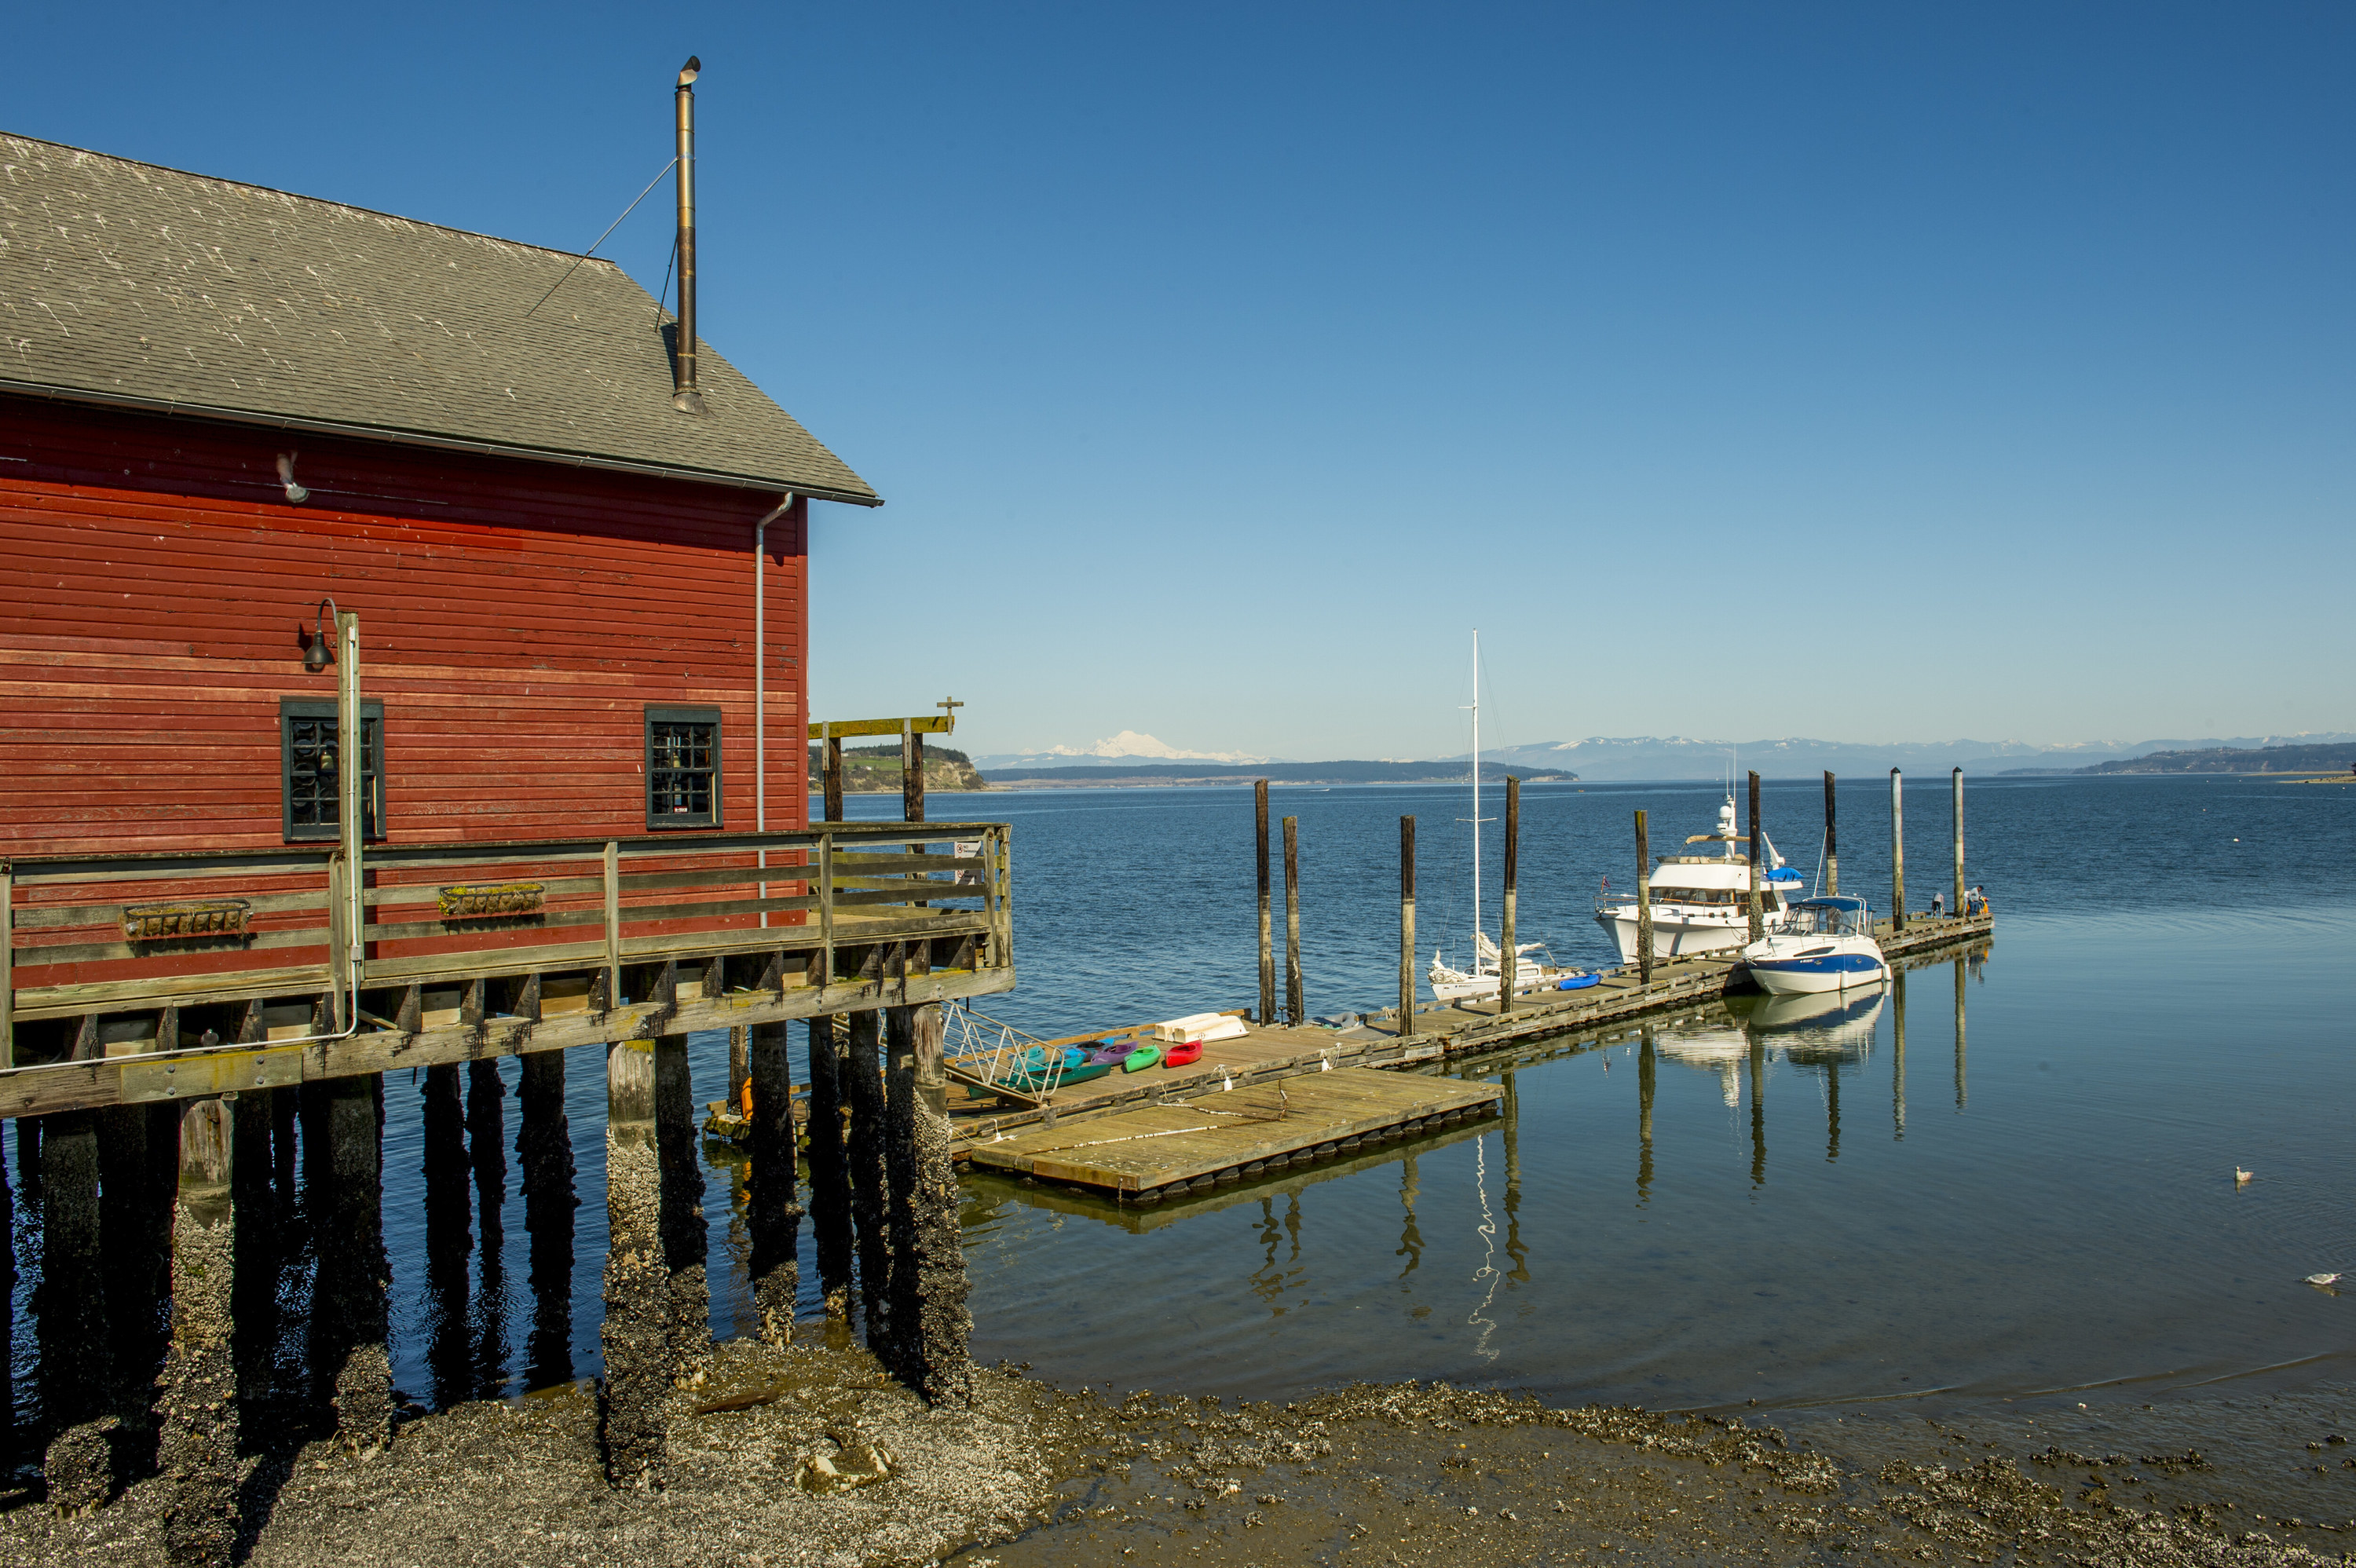 The wharf in Coupeville